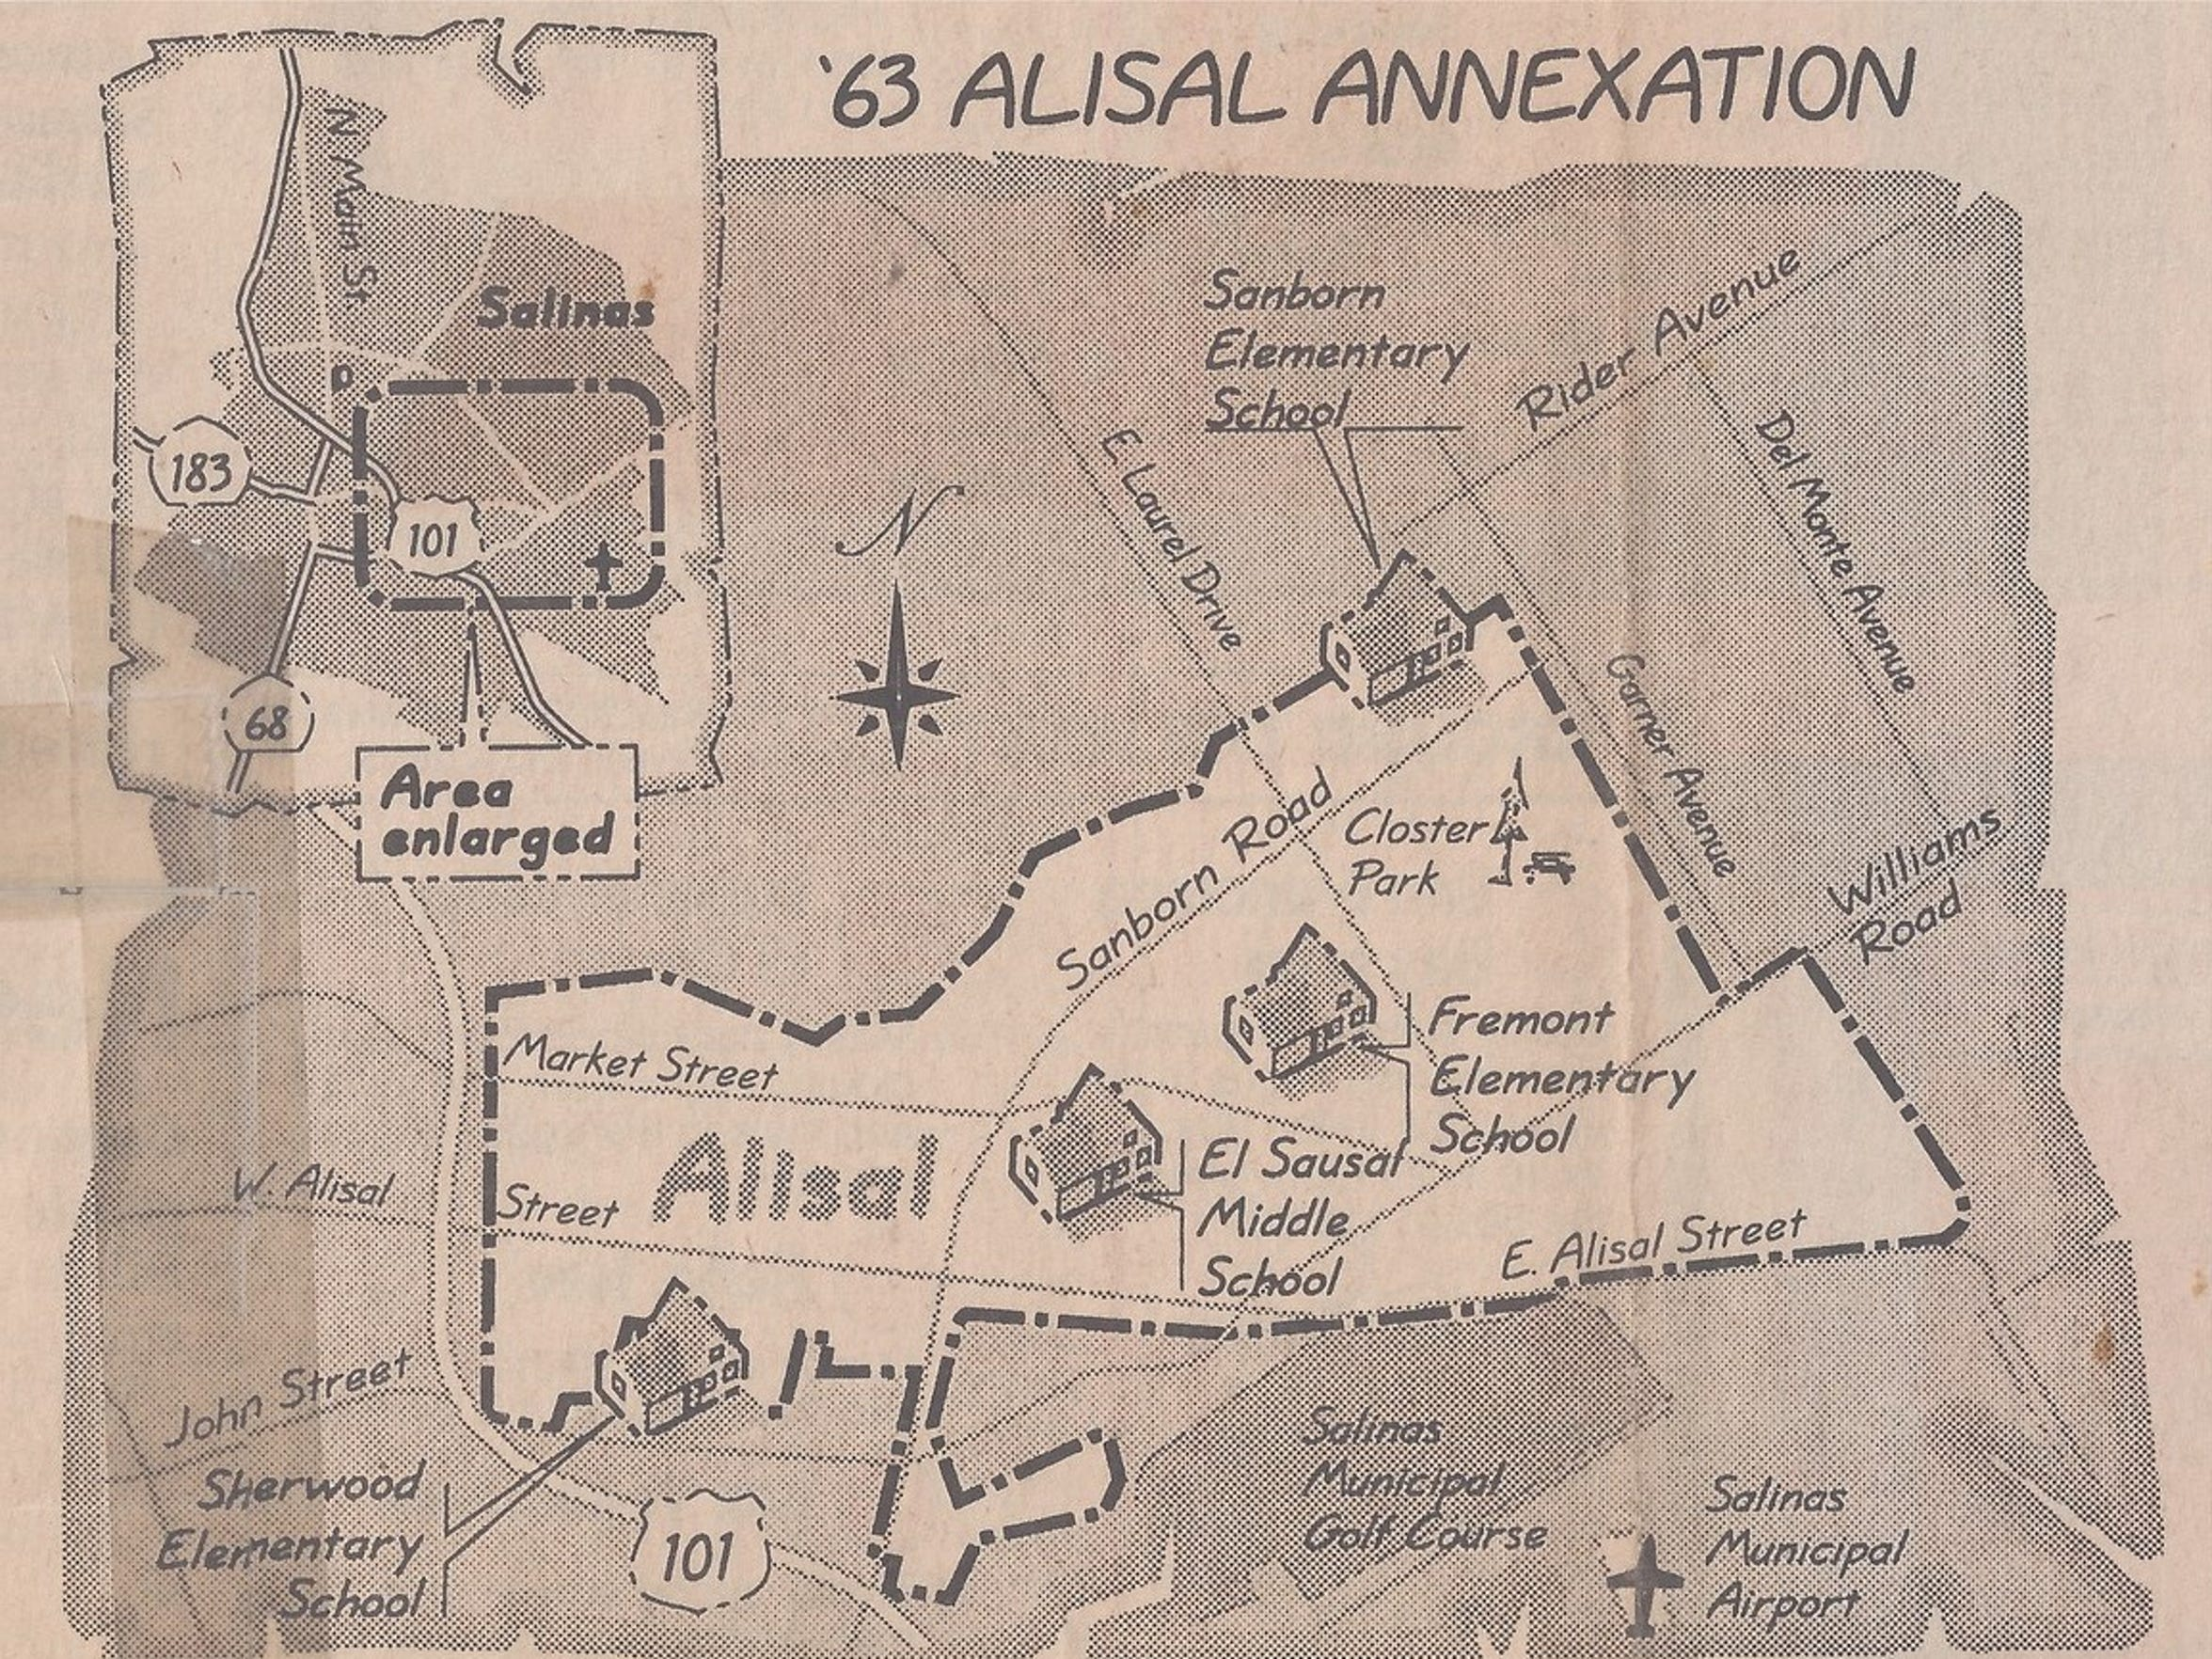 Alisal annexation map from 1963.